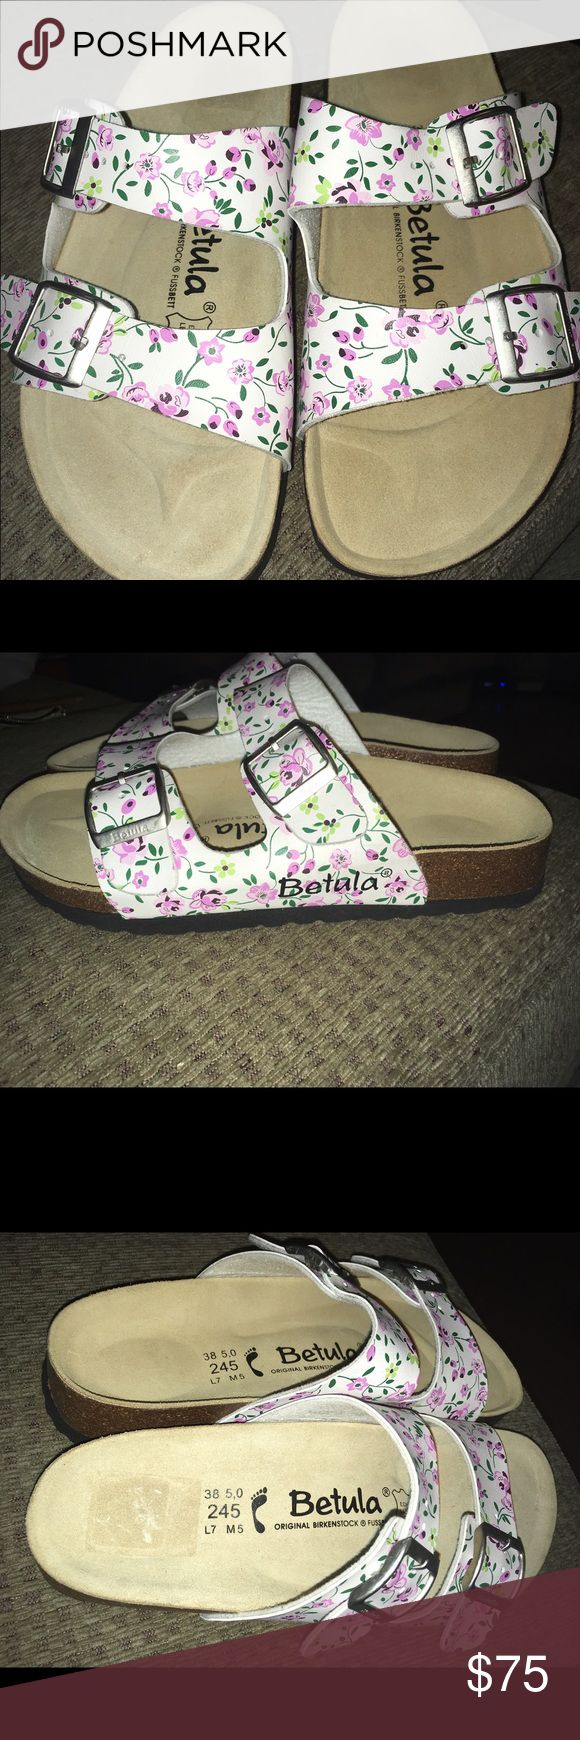 New Birkenstock Betula Sandals Size 7 Here is a New Birkenstock Betula Sandals Size 7. It is new without box Birkenstock Shoes Sandals